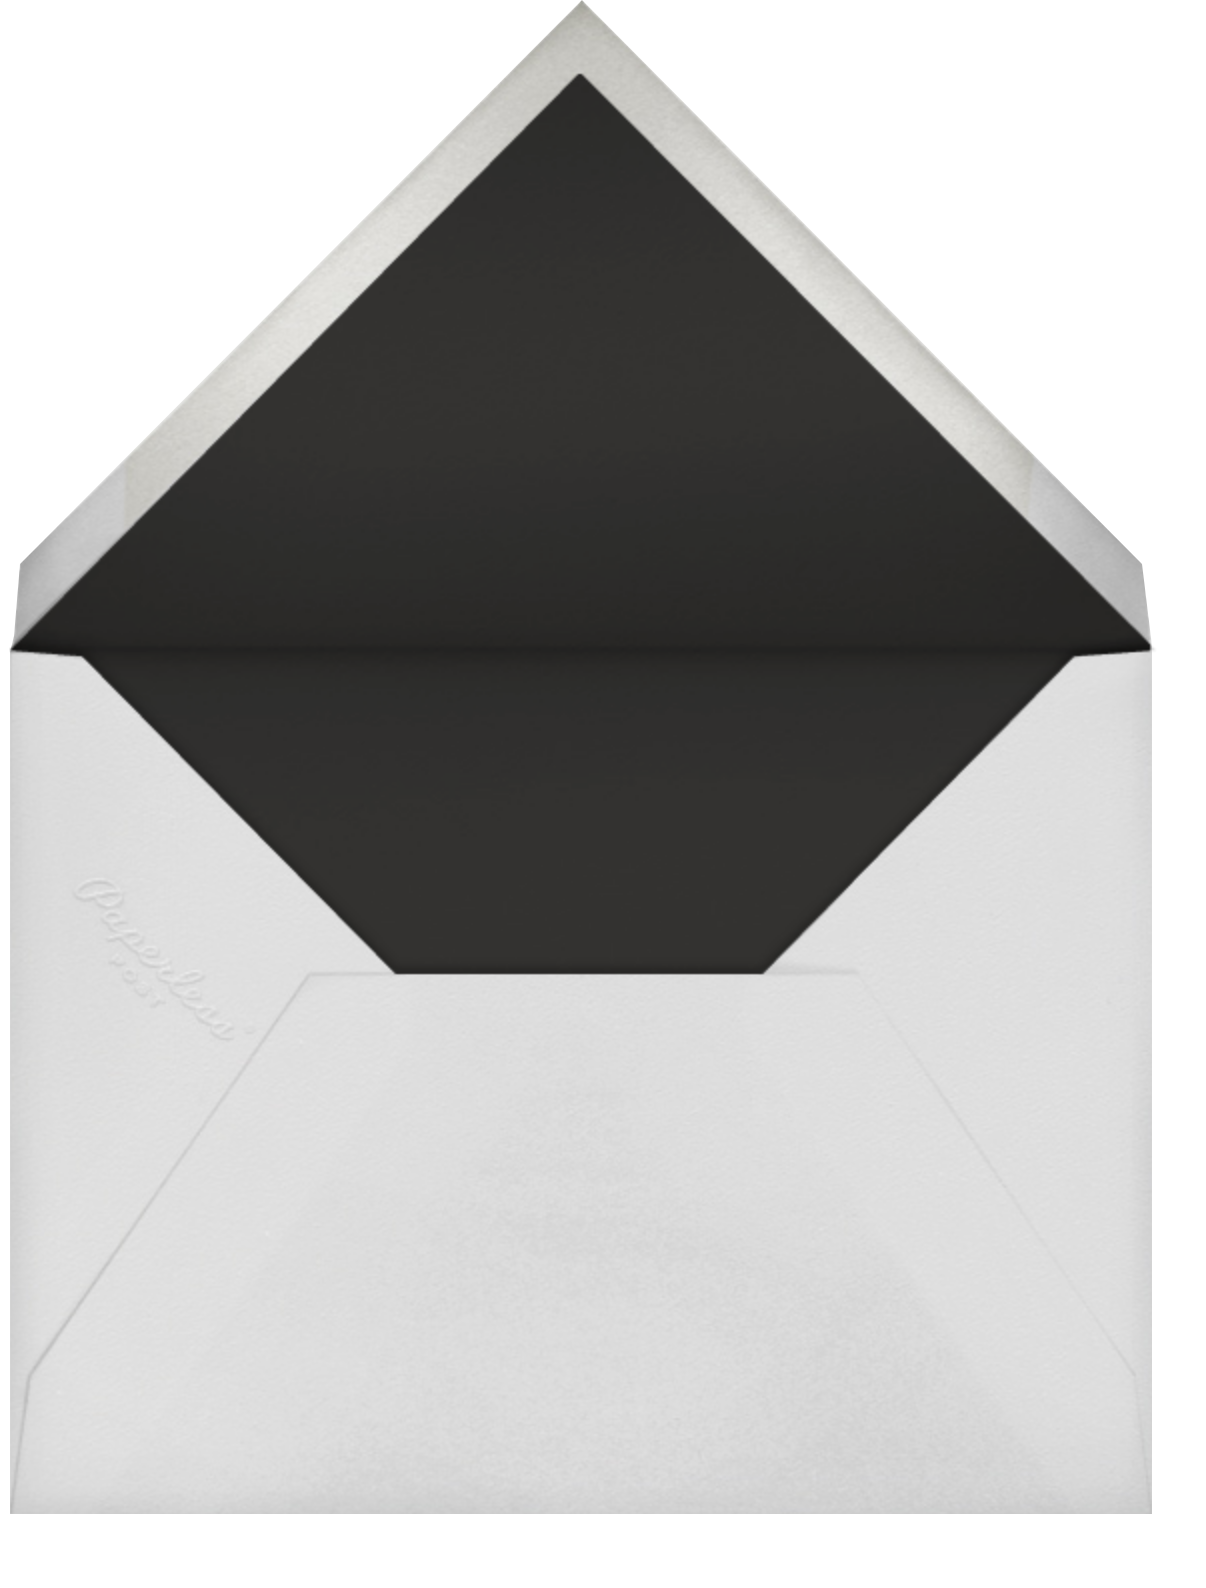 Noland (New Date) - Gold  - Paperless Post - Envelope